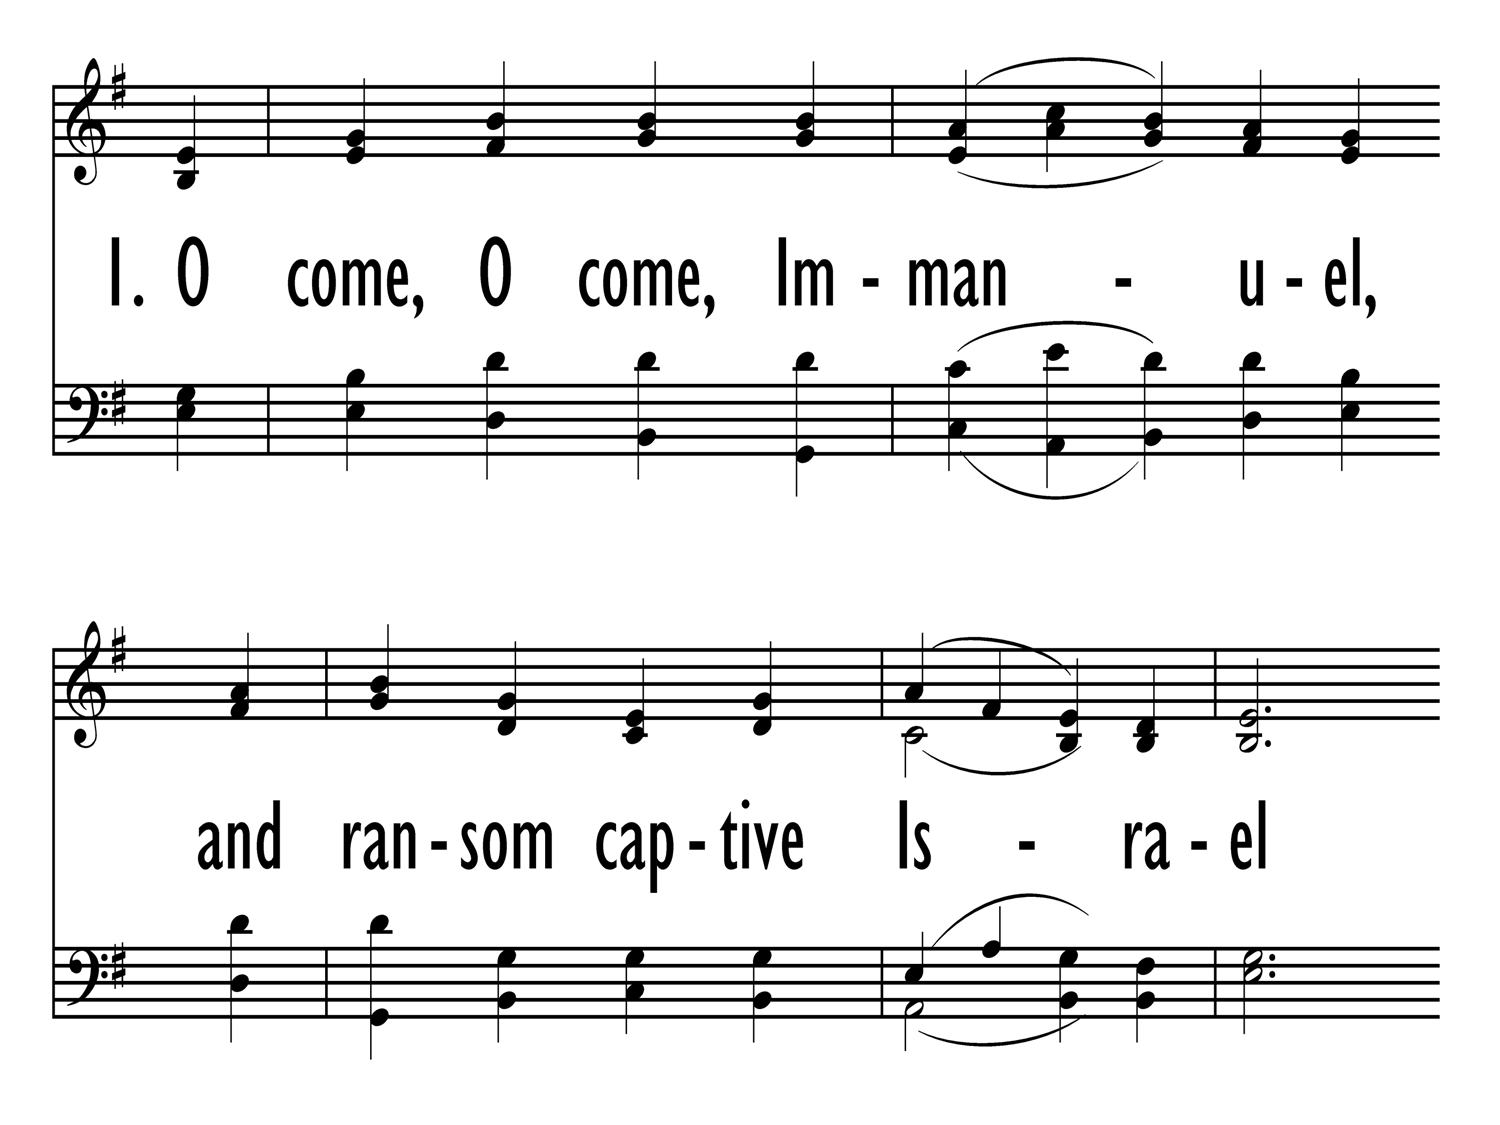 O COME, O COME, IMMANUEL (Gray Psalter 328) - Hymnary.org